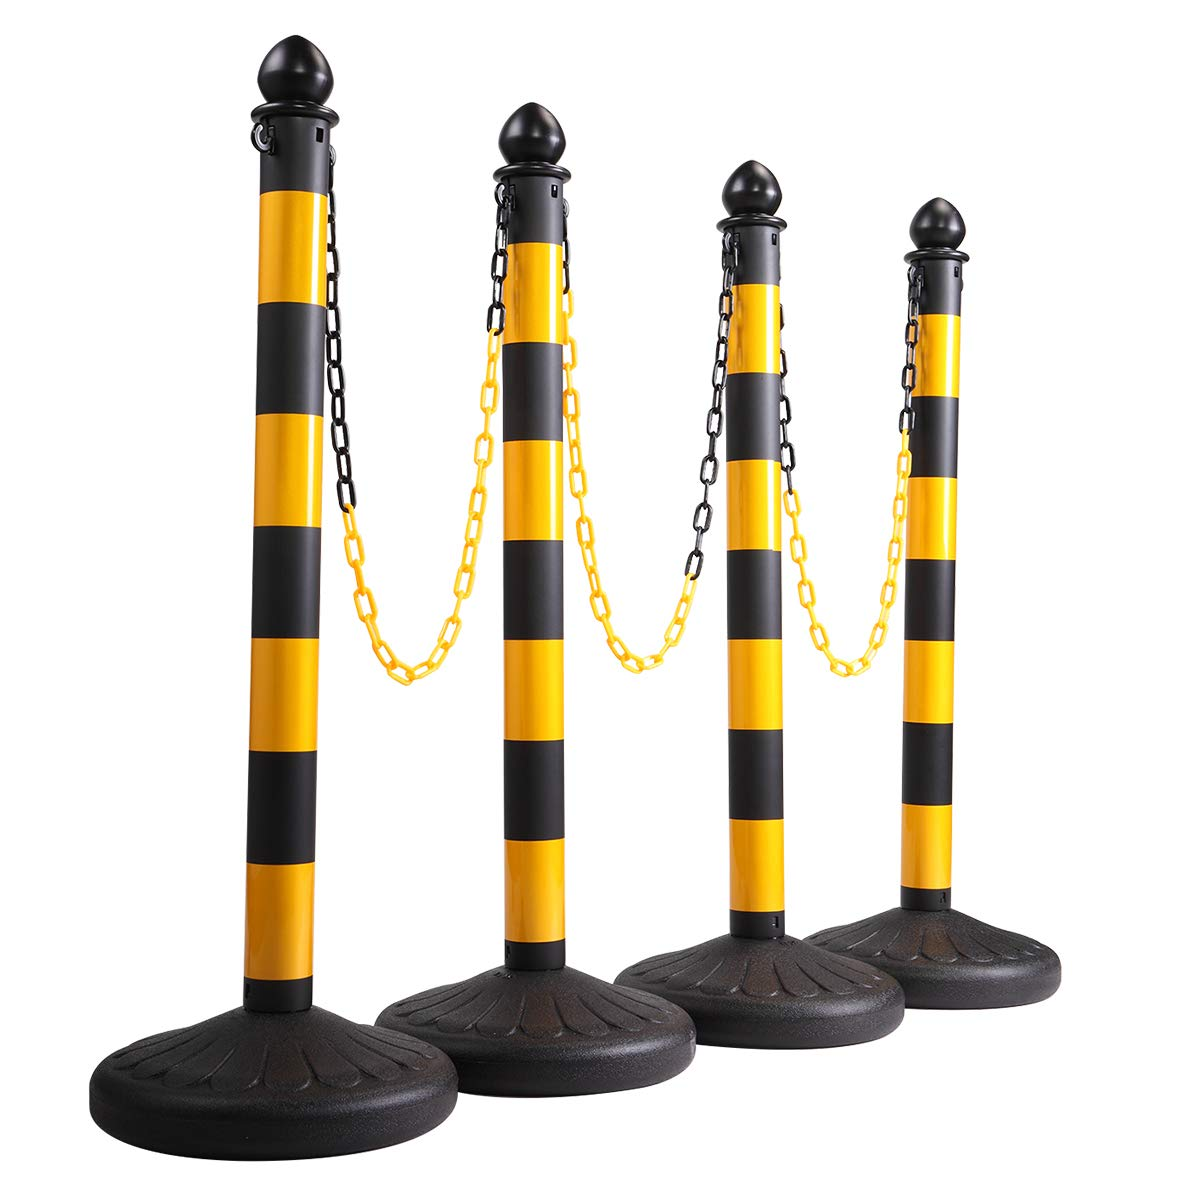 neotheroad Plastic Stanchion Posts Set Queue Line Safety Barrier 4 PCs with 39.4'' Chain by neotheroad